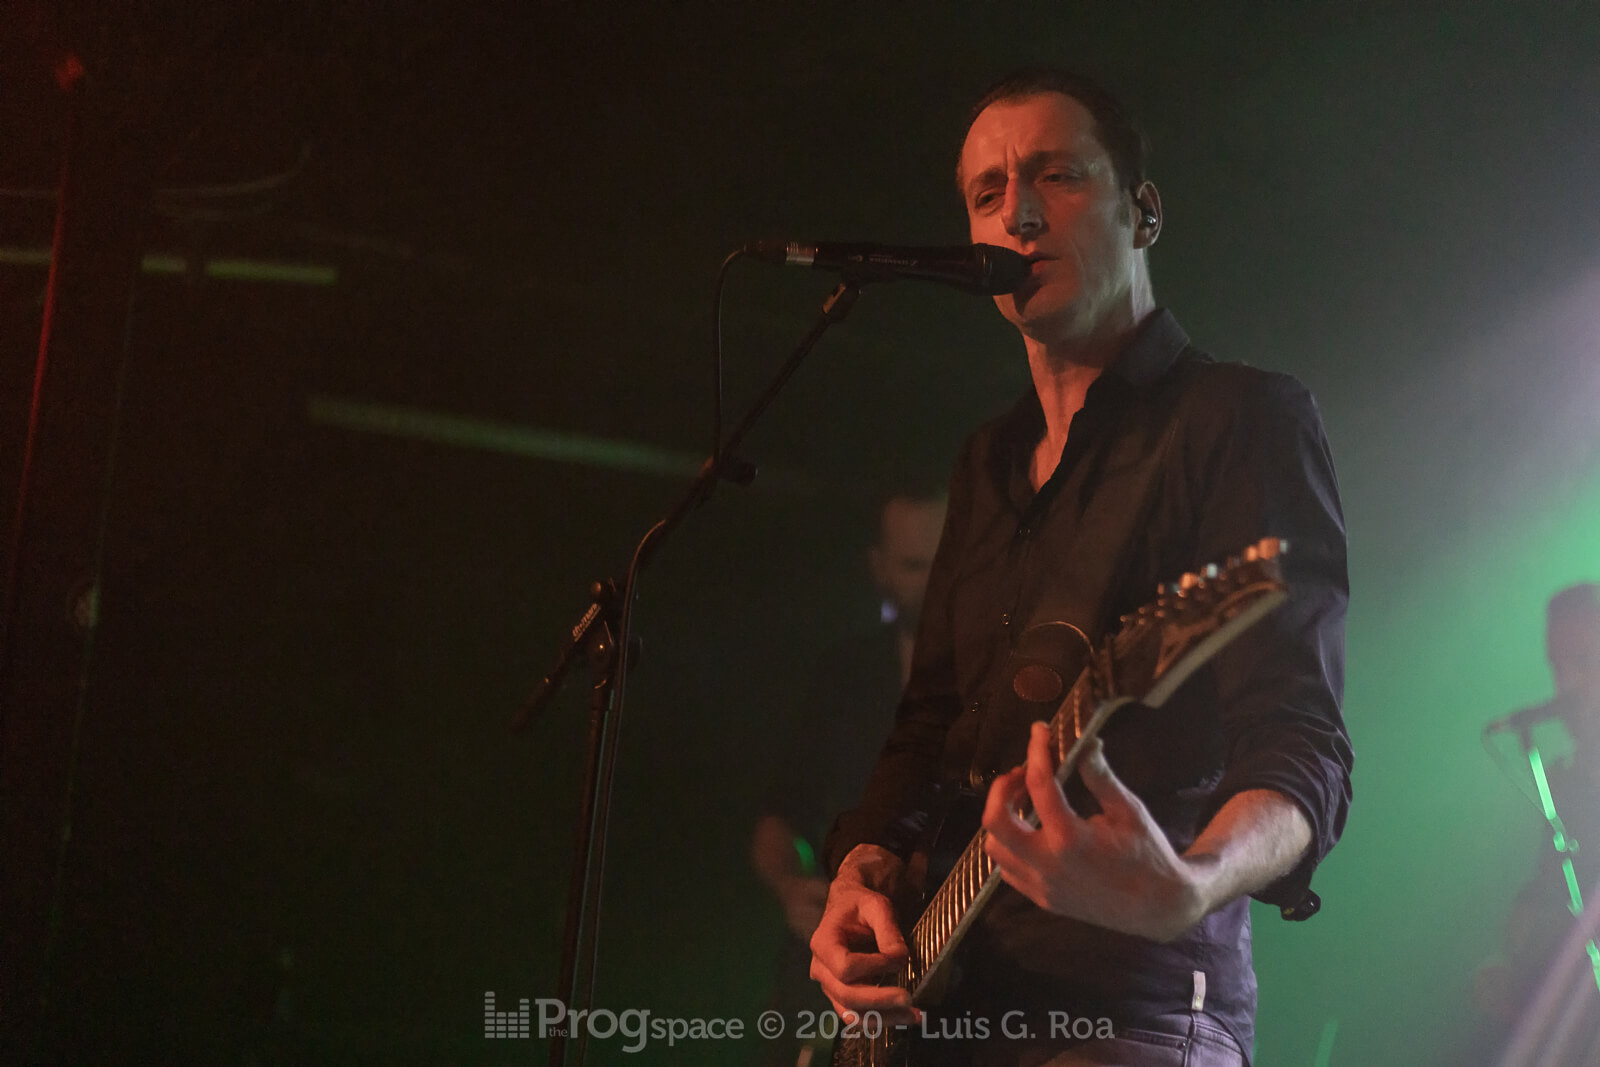 Disillusion live in Hamburg, 8 February 2020